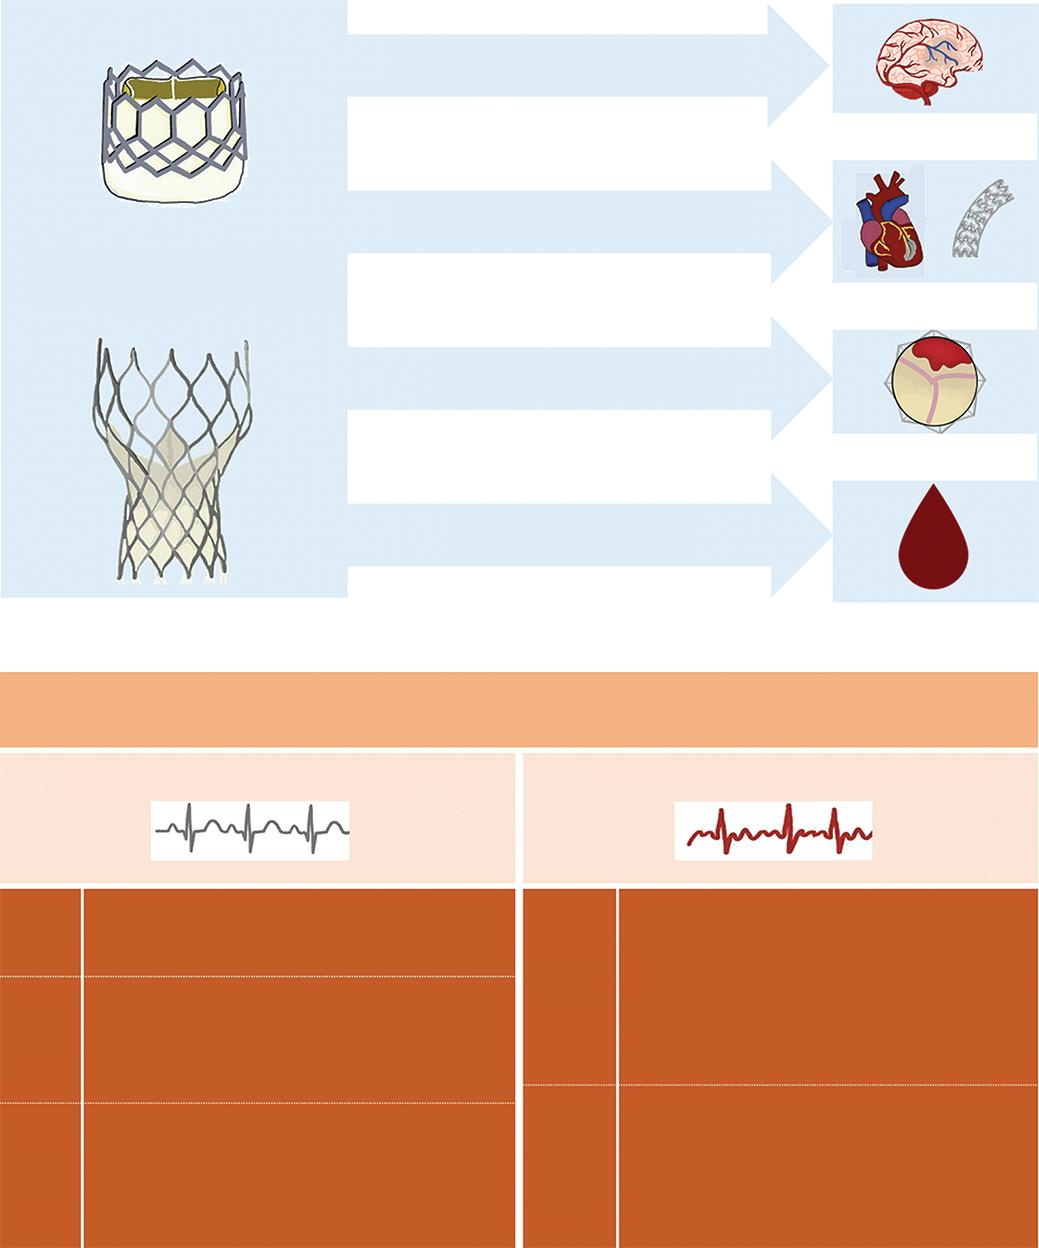 Page 56 of Antithrombotic Therapy After Transcatheter Aortic Valve Implantation